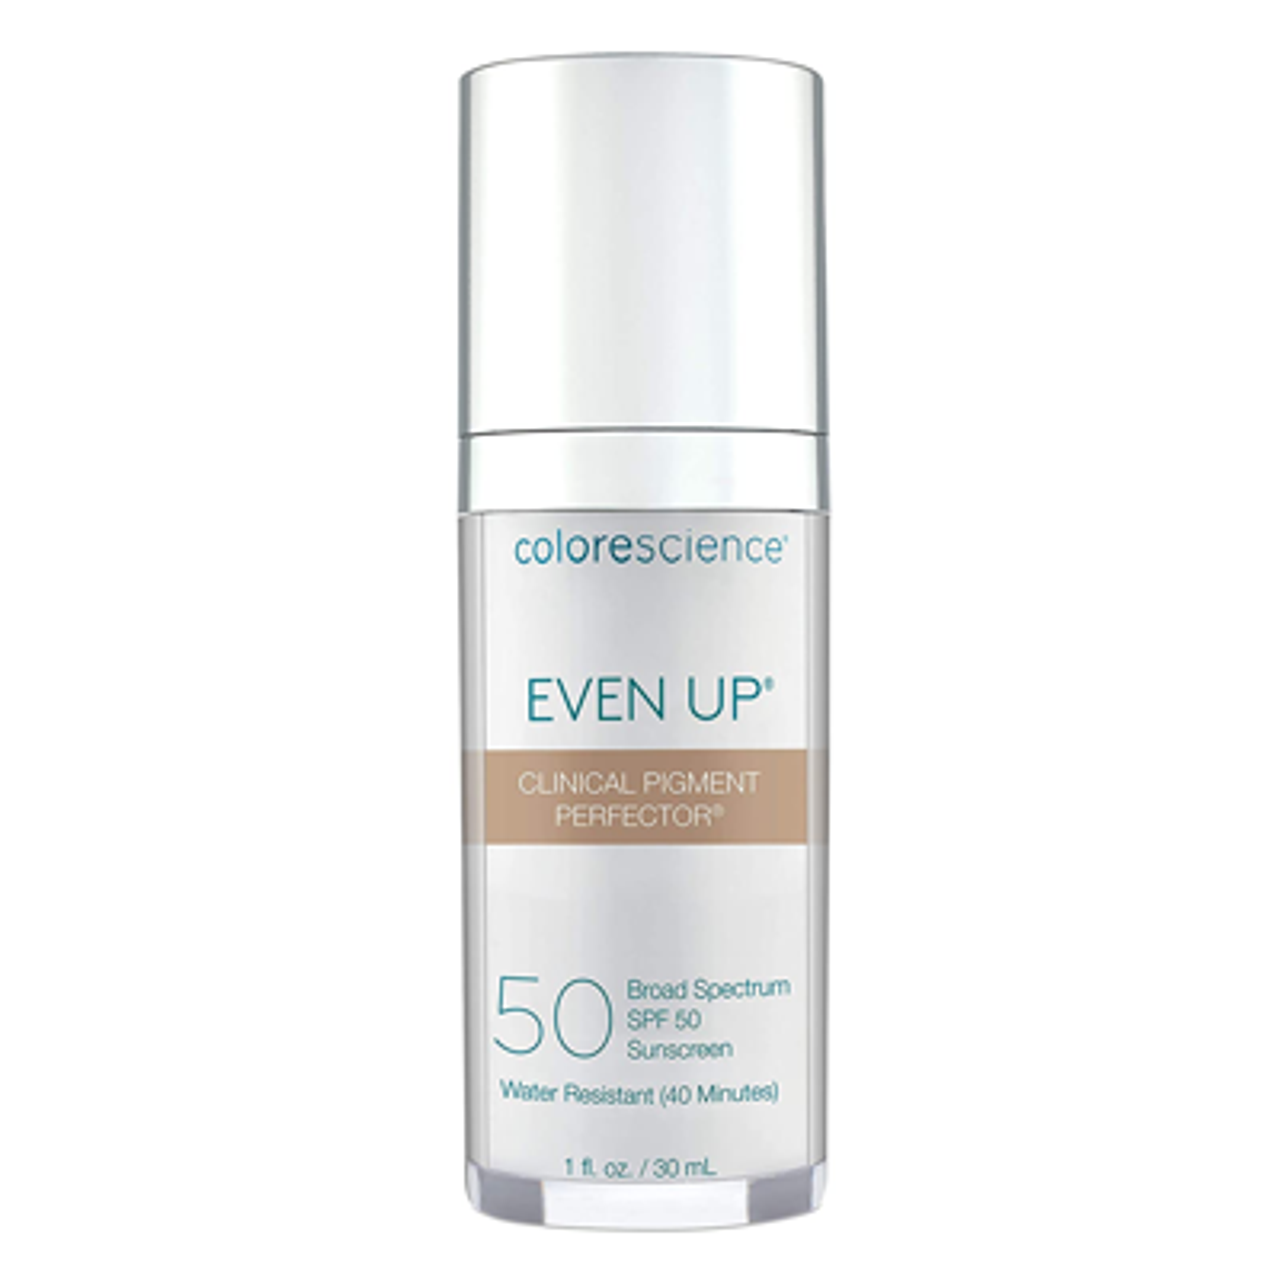 Even Up SPF50